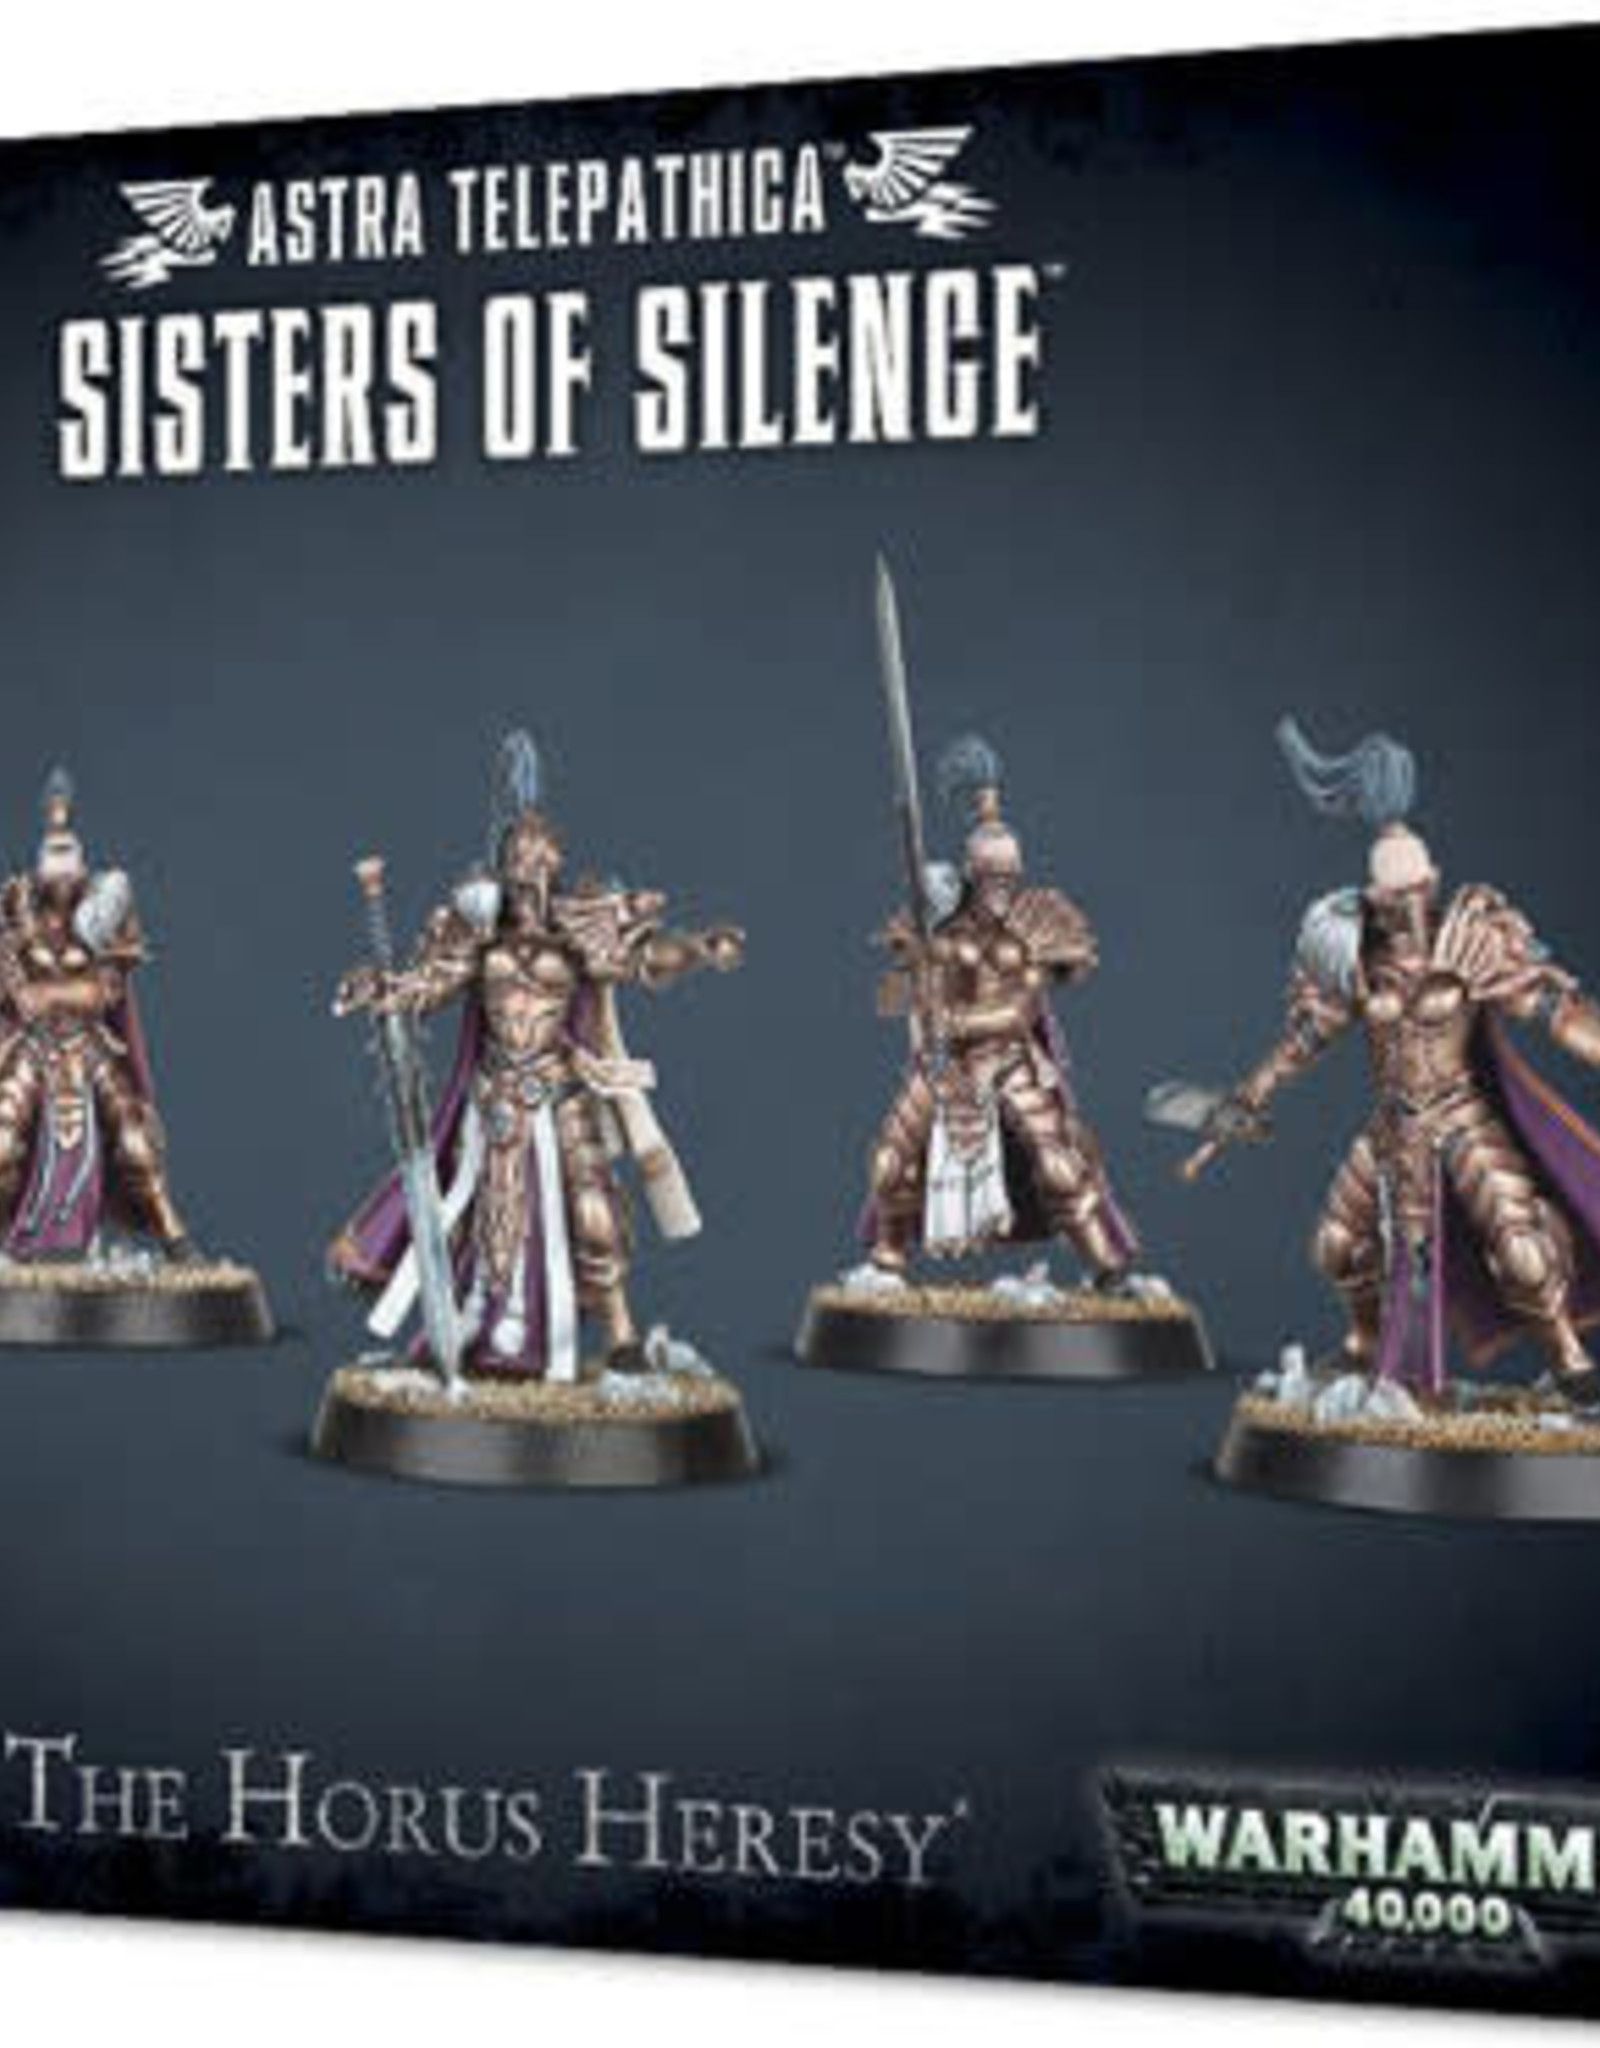 Warhammer 40K Astra Telepathica Sisters of Silence